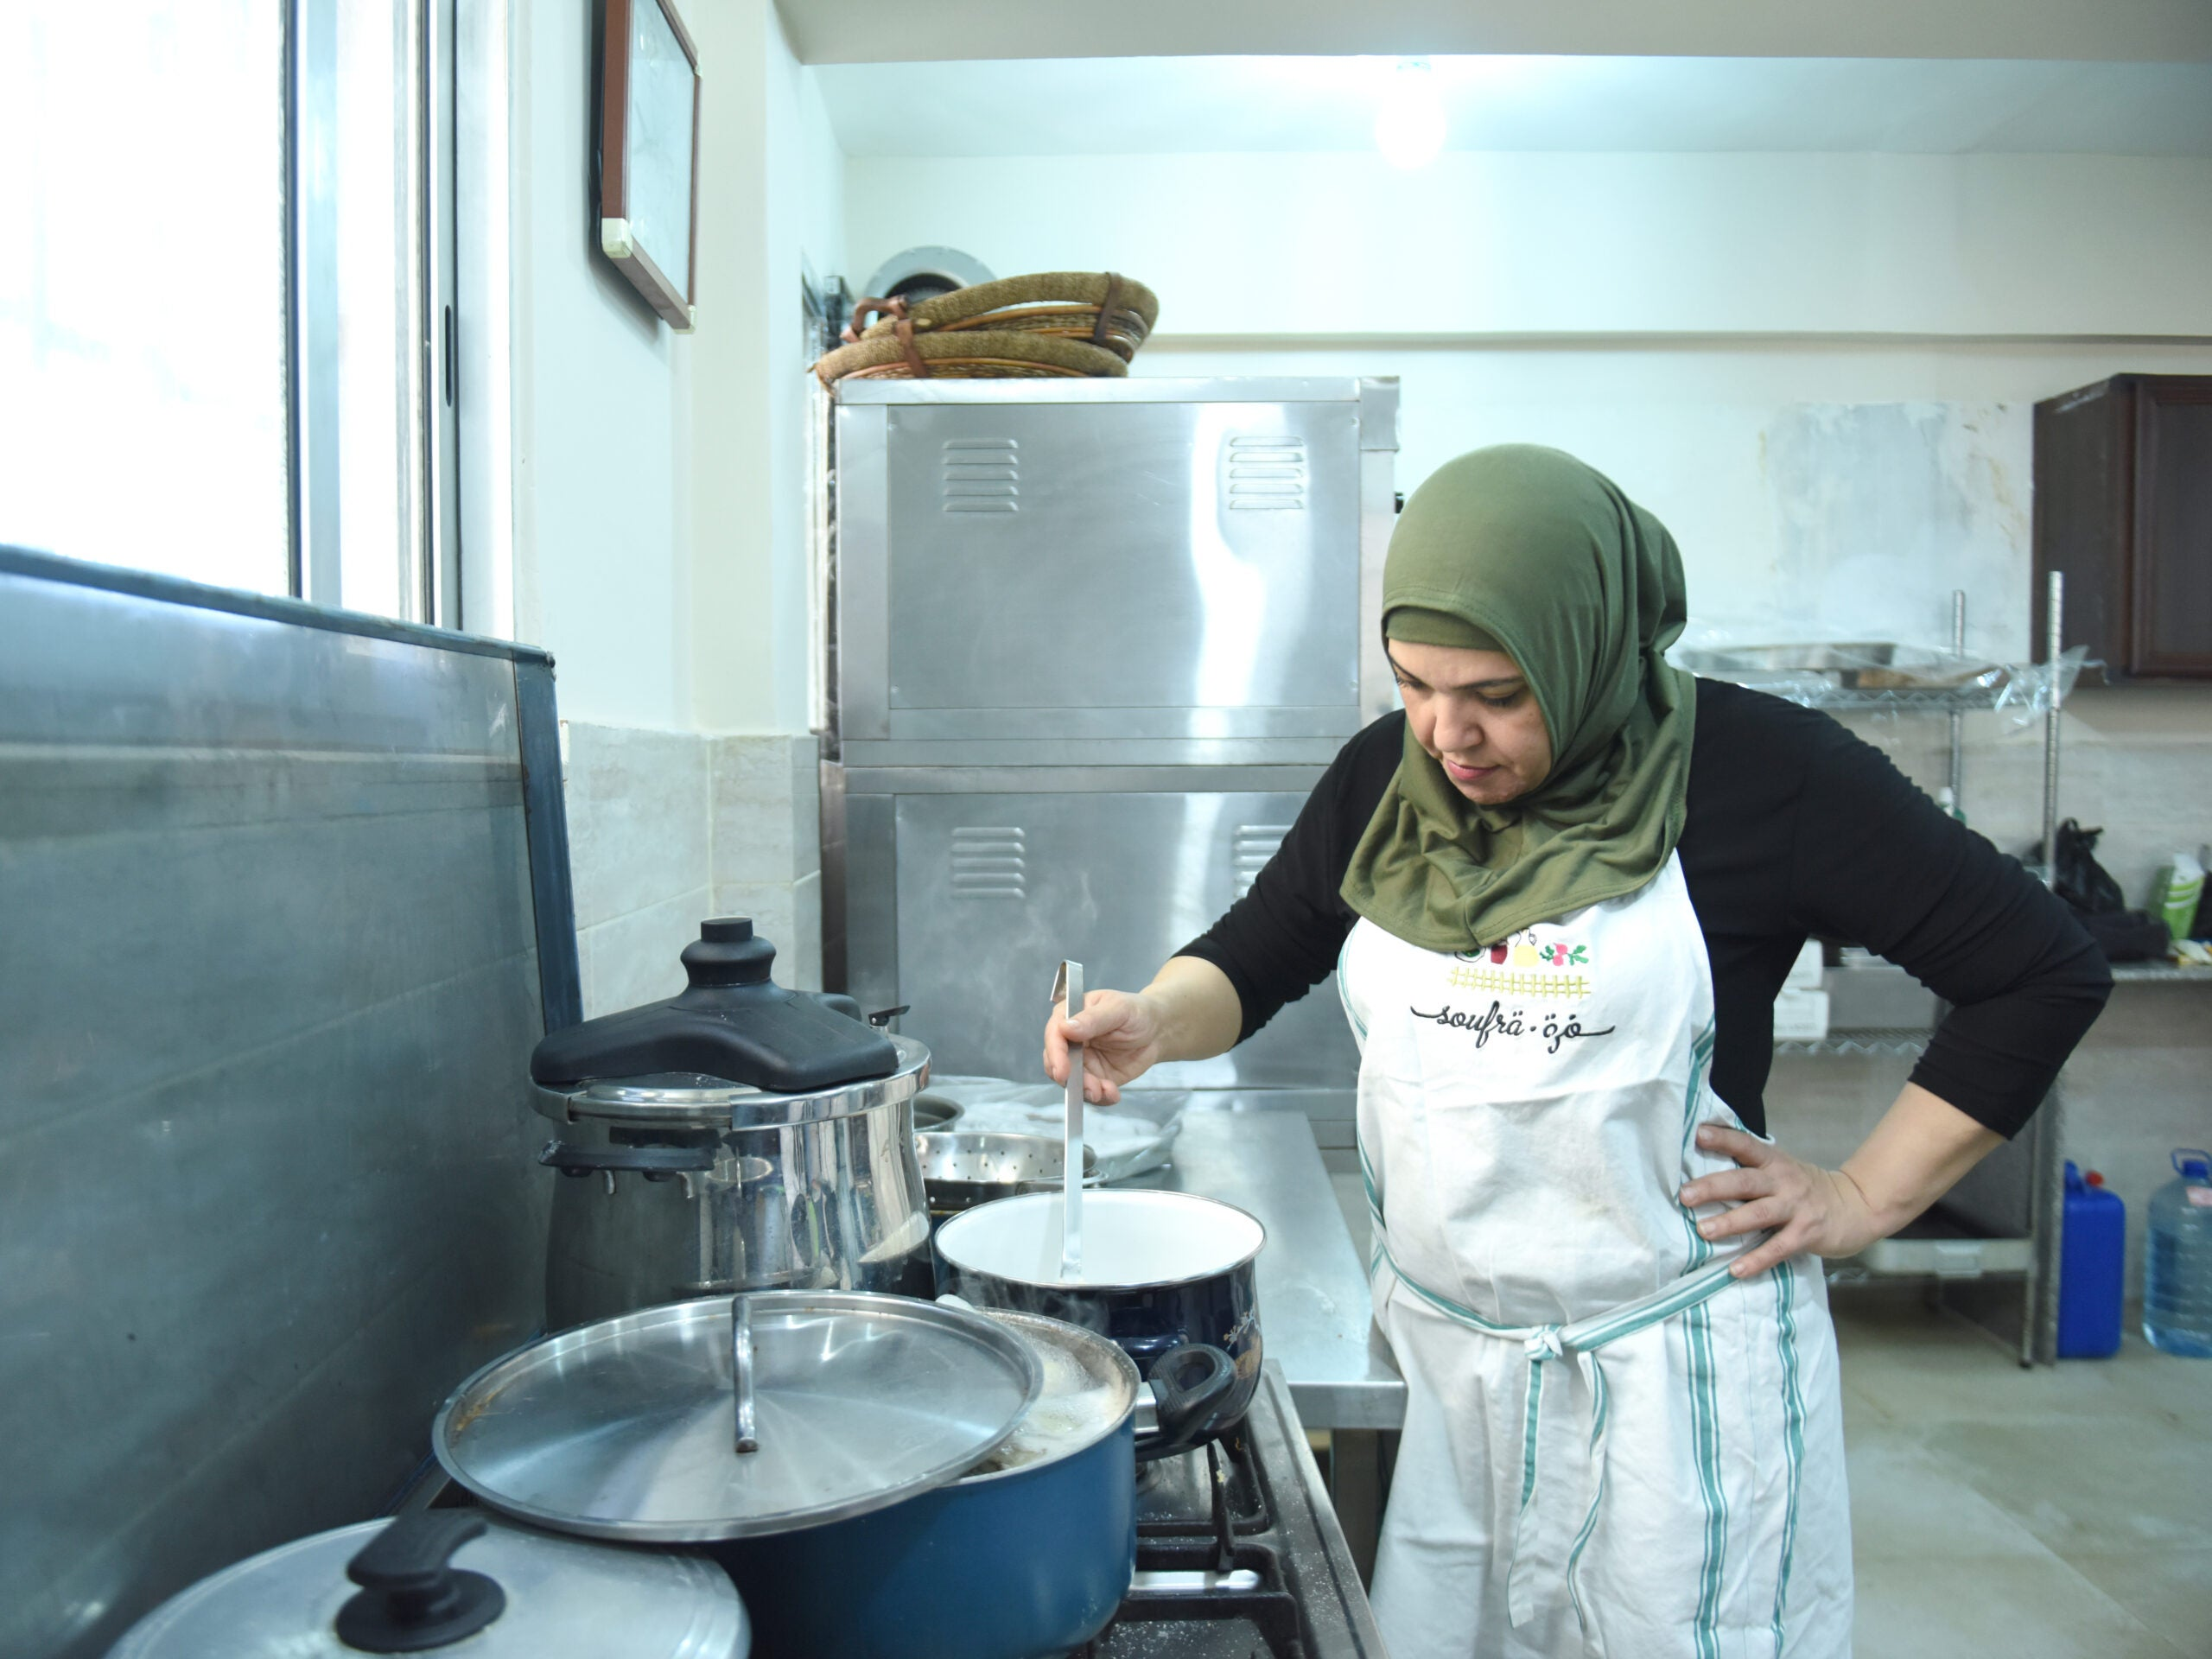 This Documentary Tells the Awe-Inspiring Story of a Refugee Turned Food-Truck Entrepreneur